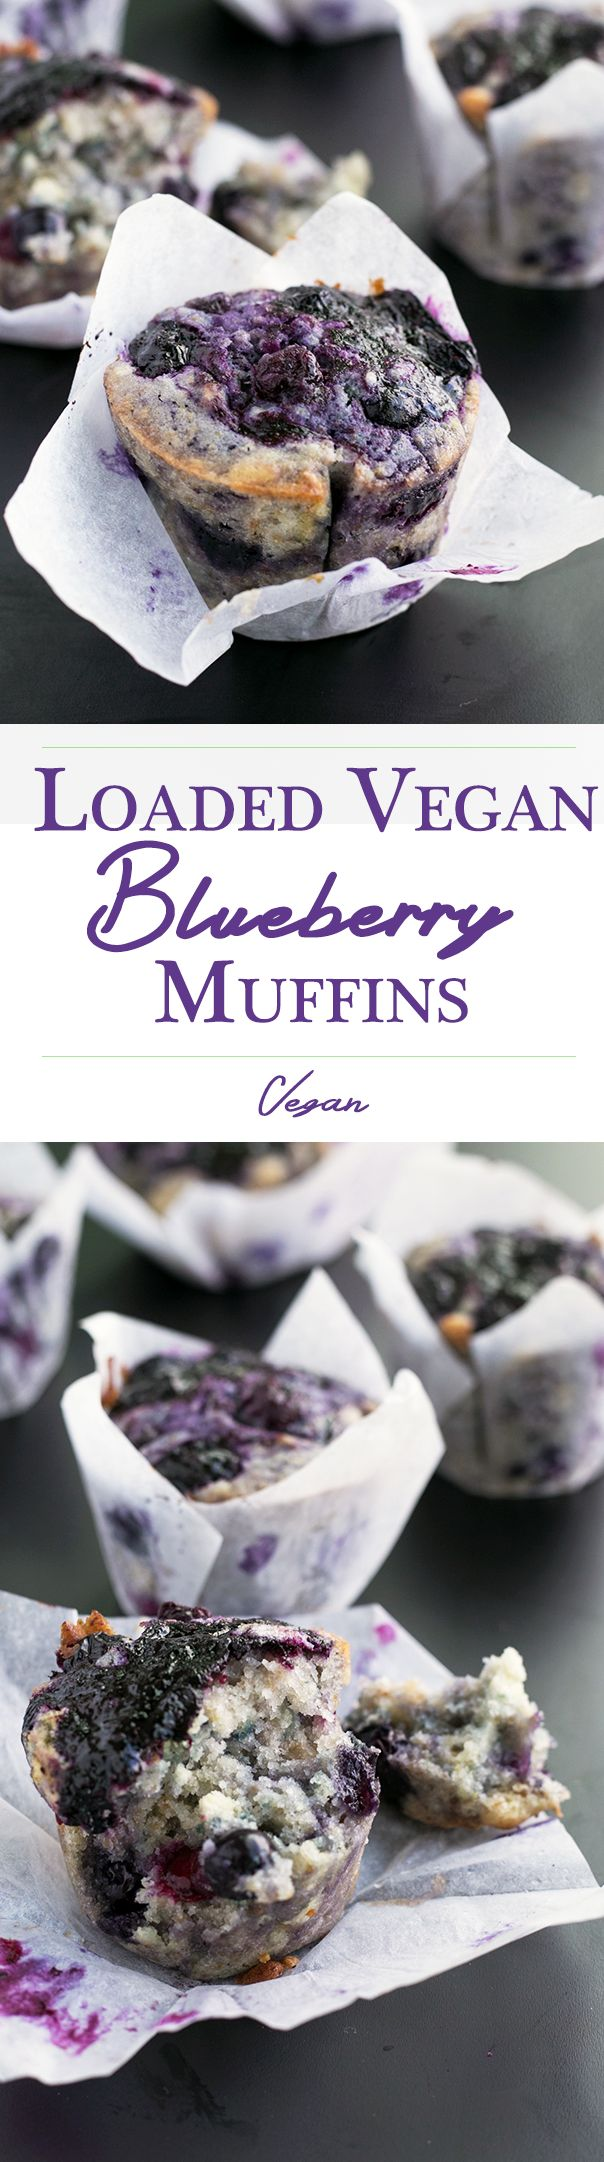 Delicious, fully loaded Vegan Blueberry Muffins.